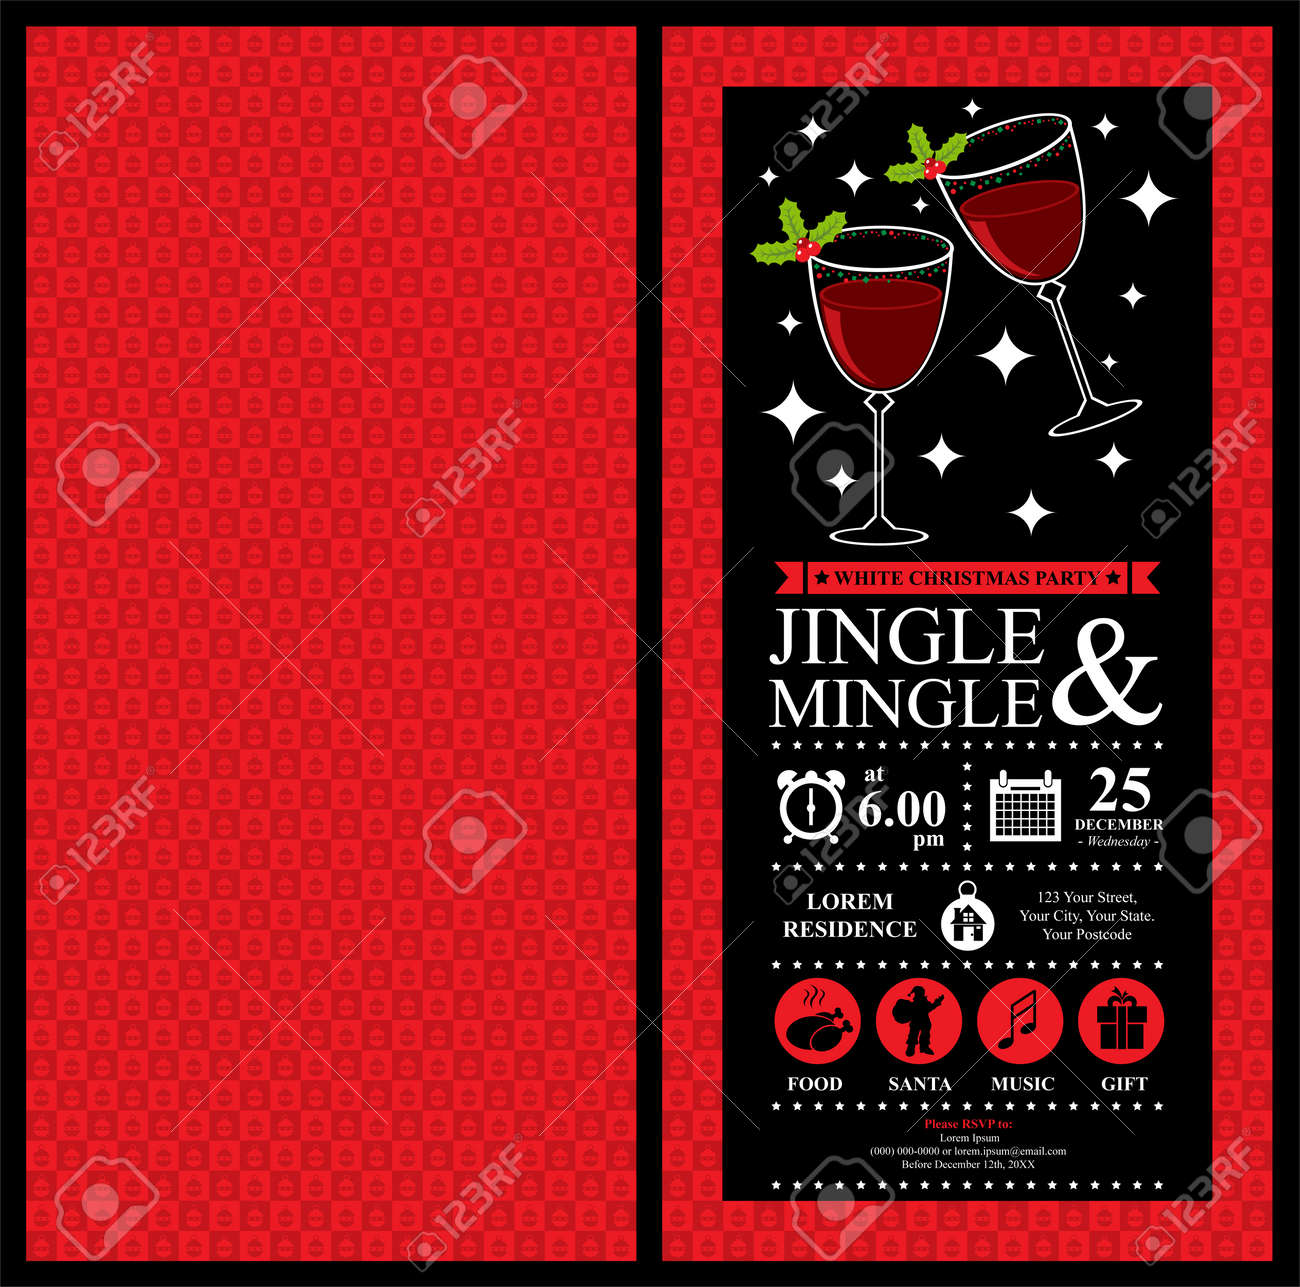 Christmas Party Invitation Card Royalty Free Cliparts, Vectors, And ...